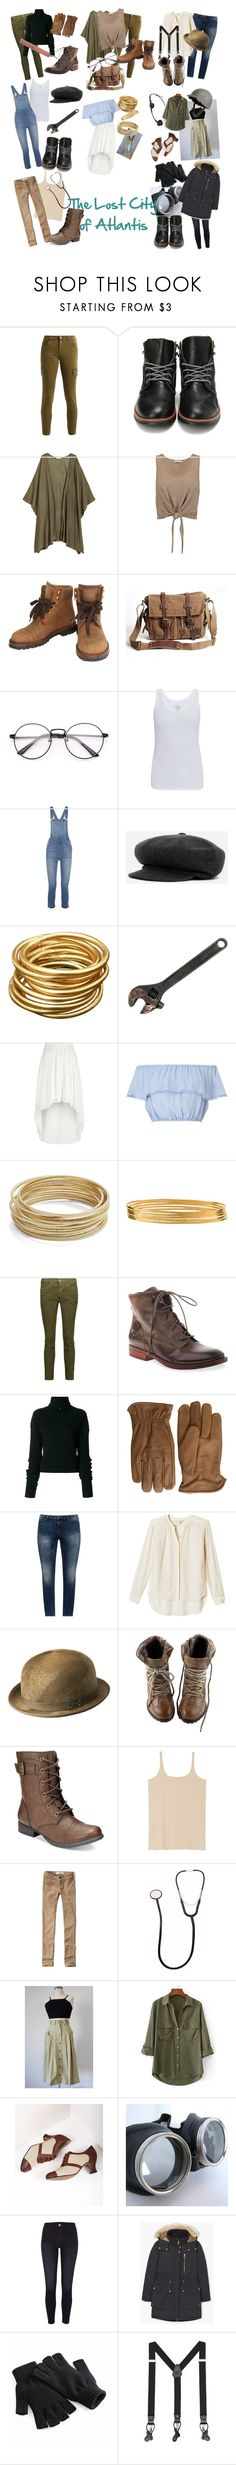 """""""The Lost City of Atlantis Characters"""" by normalpeoplescareme0 ❤ liked on Polyvore featuring Alice + Olivia, Chanel, Majestic, Madewell, kangol, River Island, Miss Selfridge, Design Lab, Jane Diaz and Current/Elliott"""